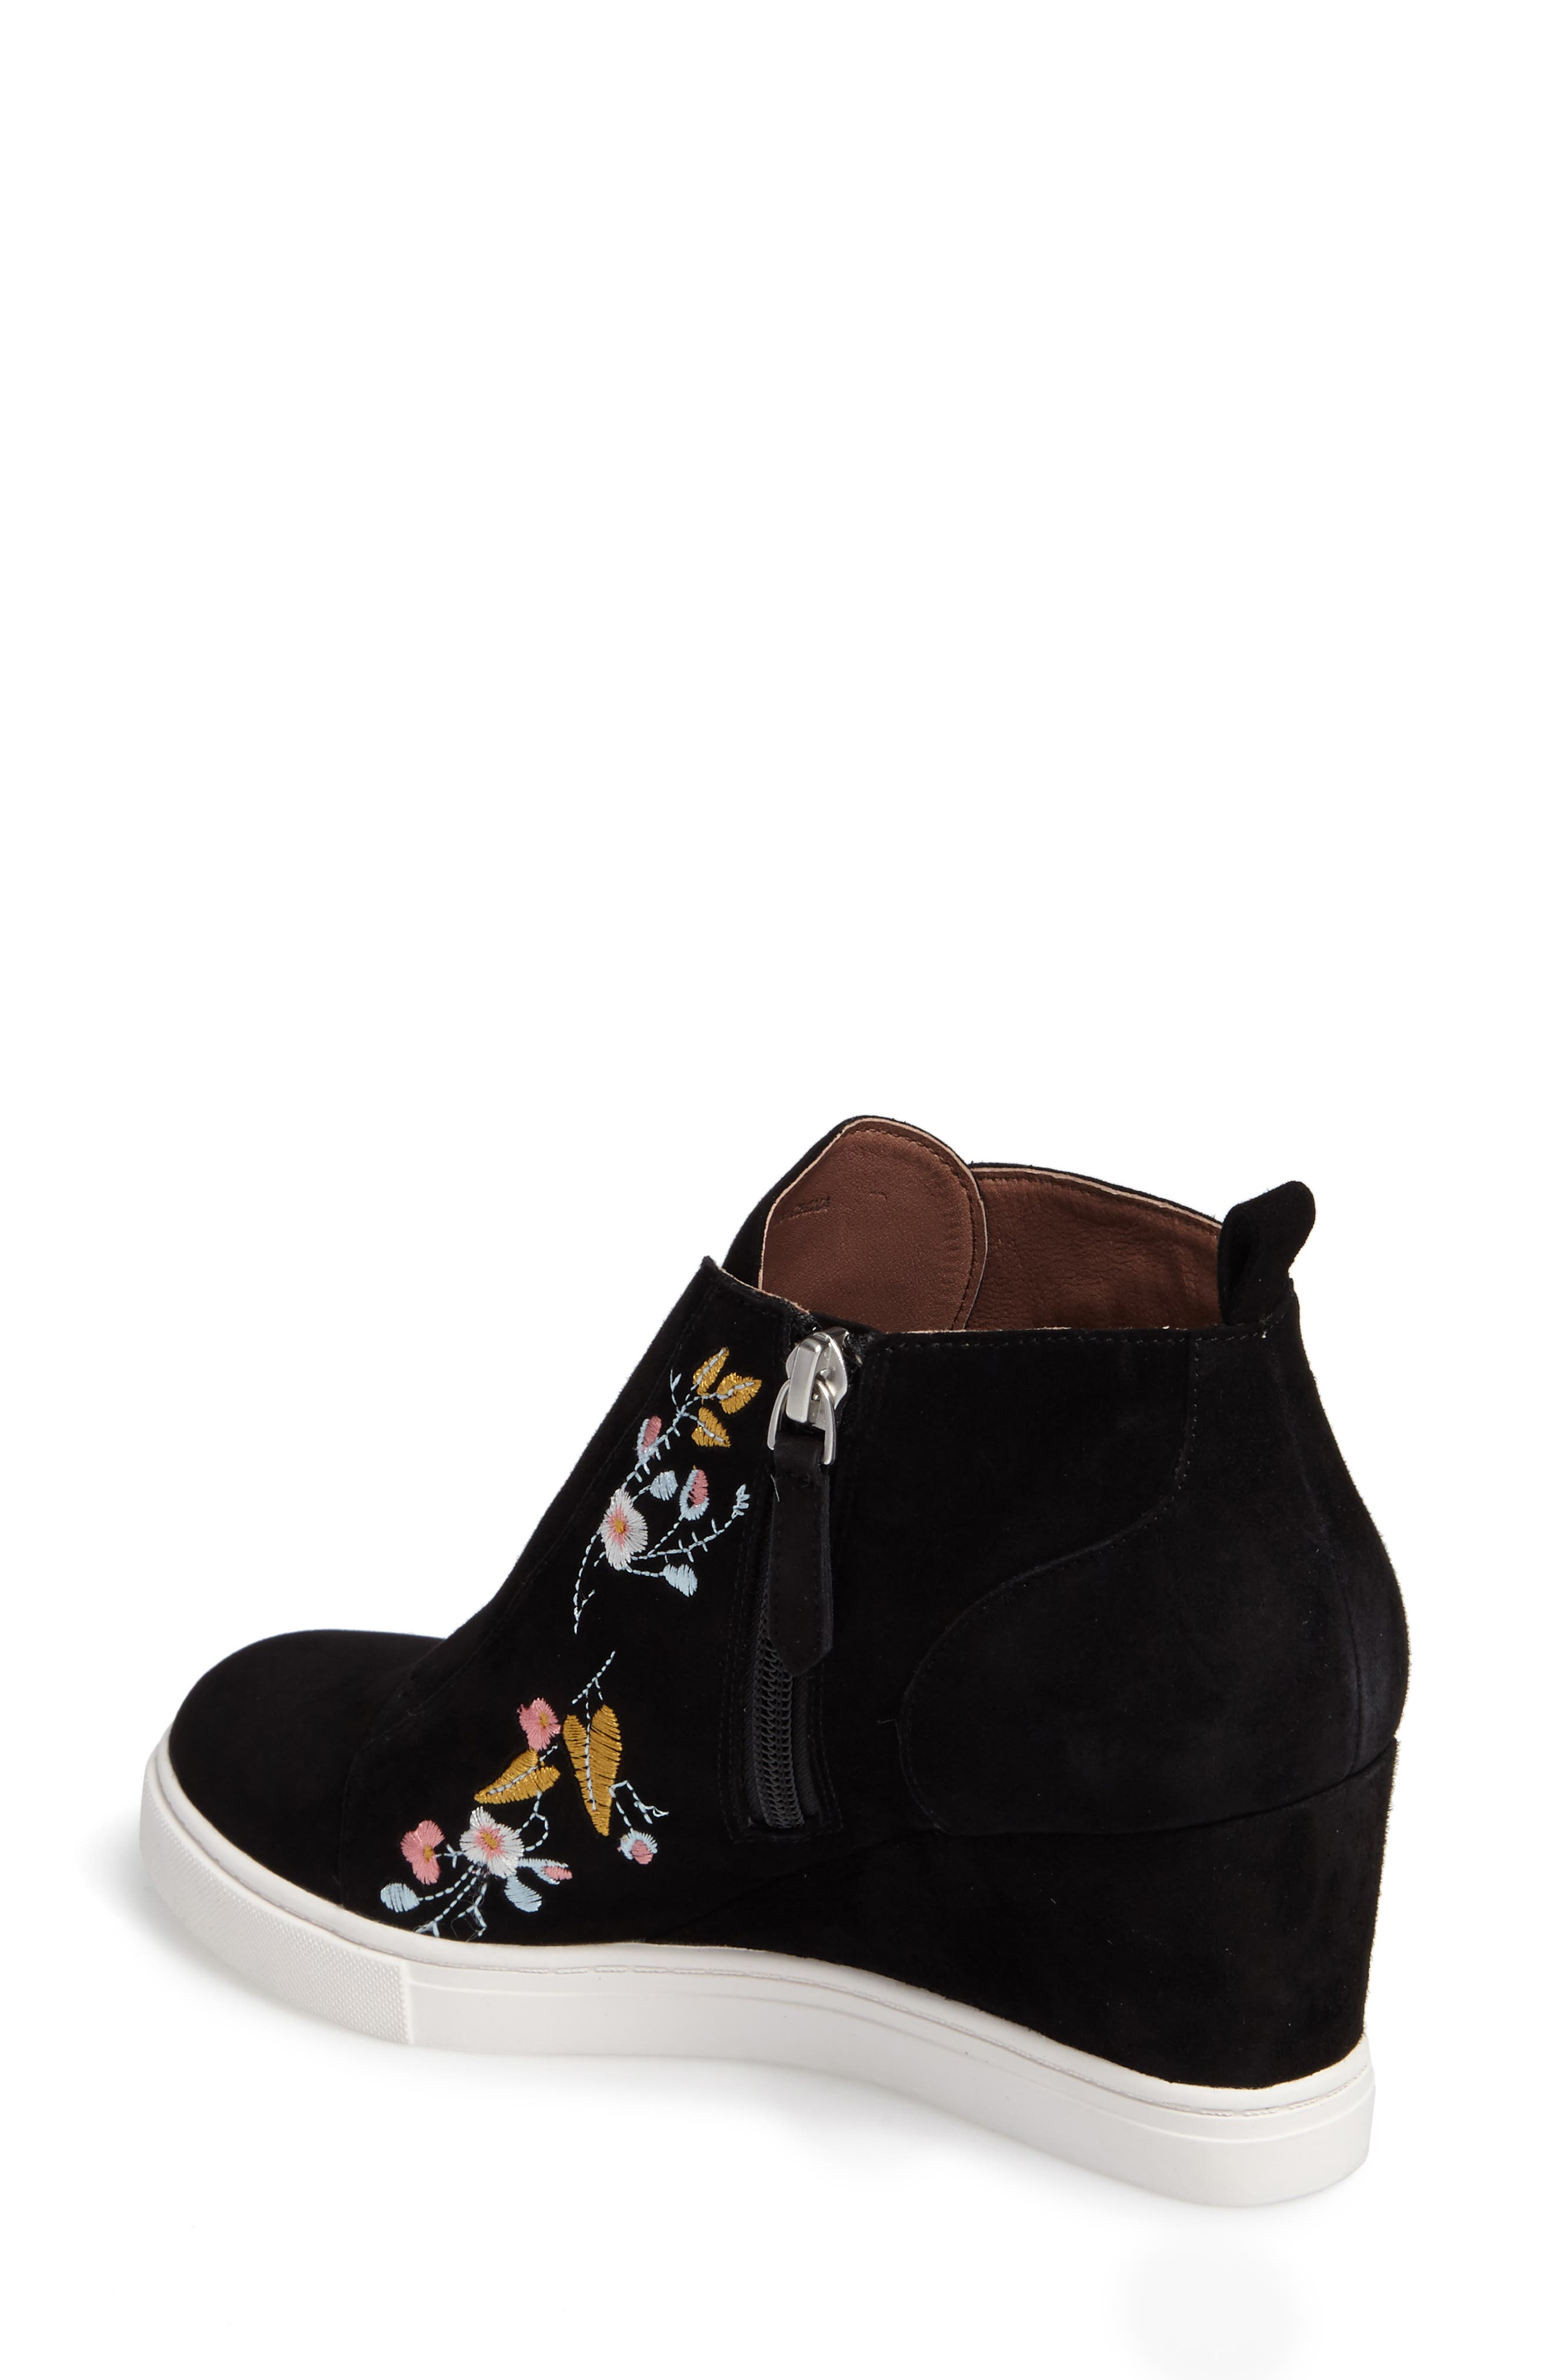 Felicia II Wedge Bootie,                             Alternate thumbnail 2, color,                             Black Embroidery Suede